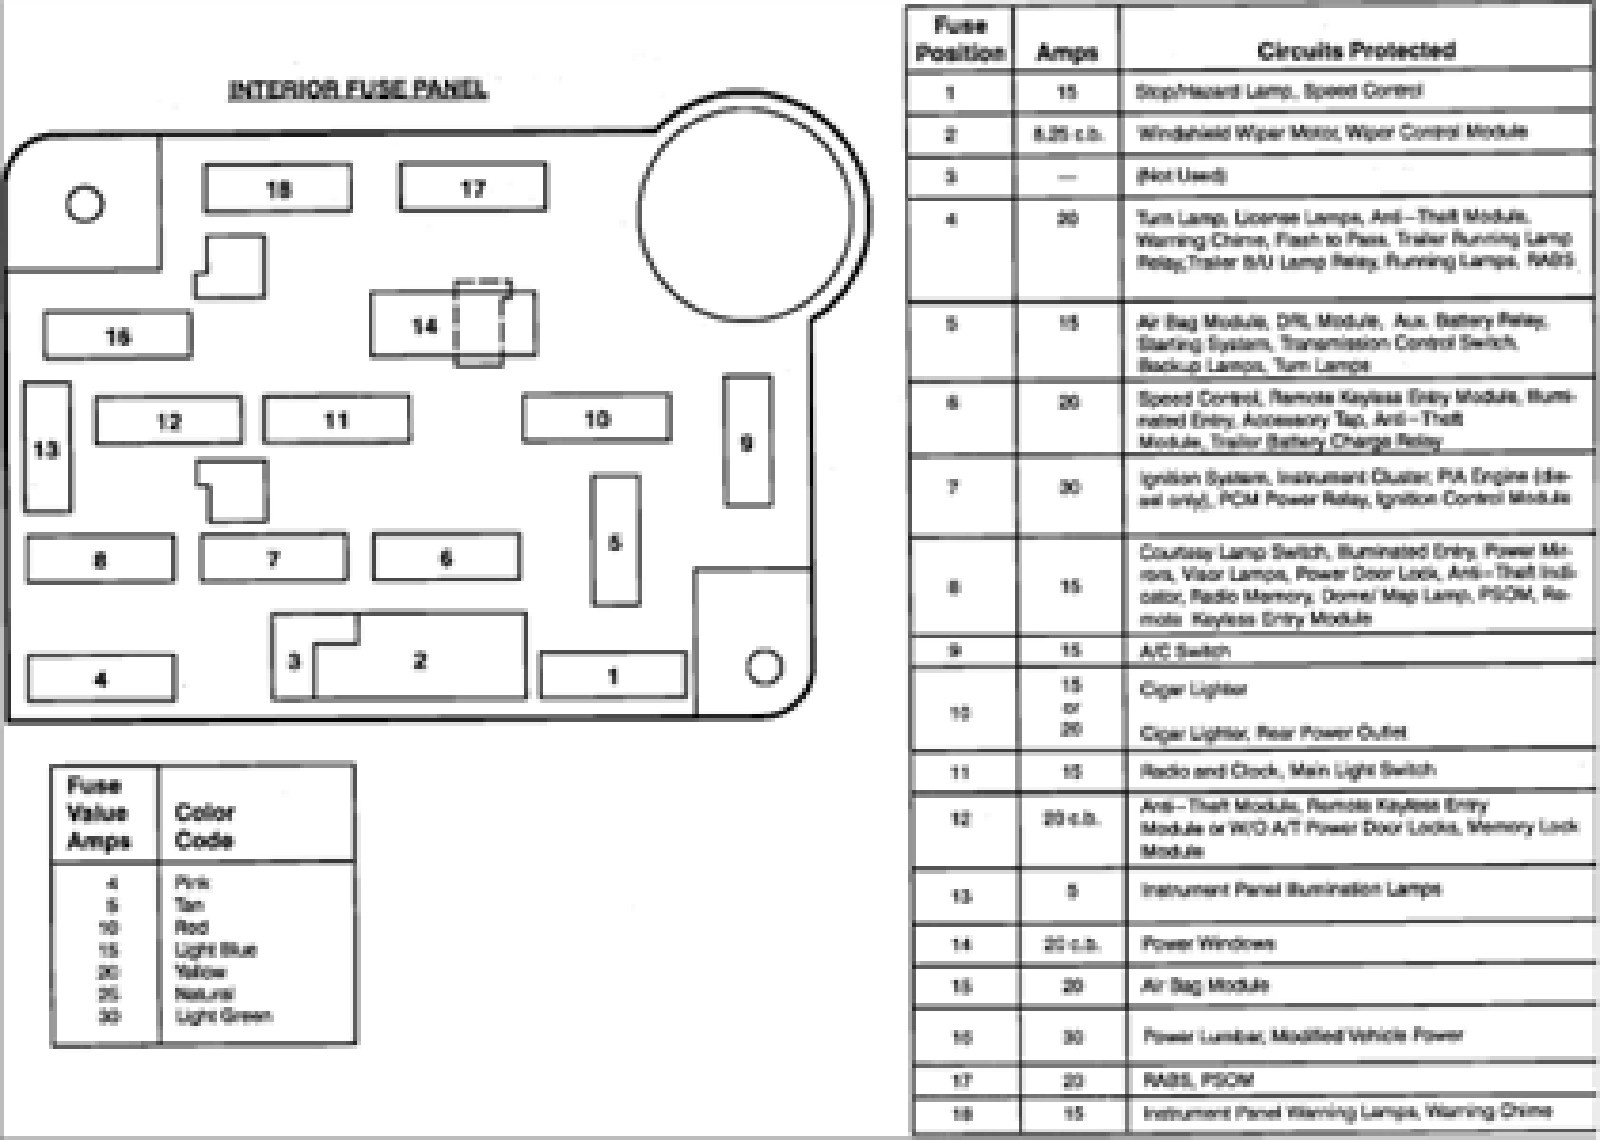 hight resolution of ford e 150 questions fuse diagram for a 1993 ford econoline van 1994 ford econoline van fuse box diagram 1994 ford e150 fuse panel diagram